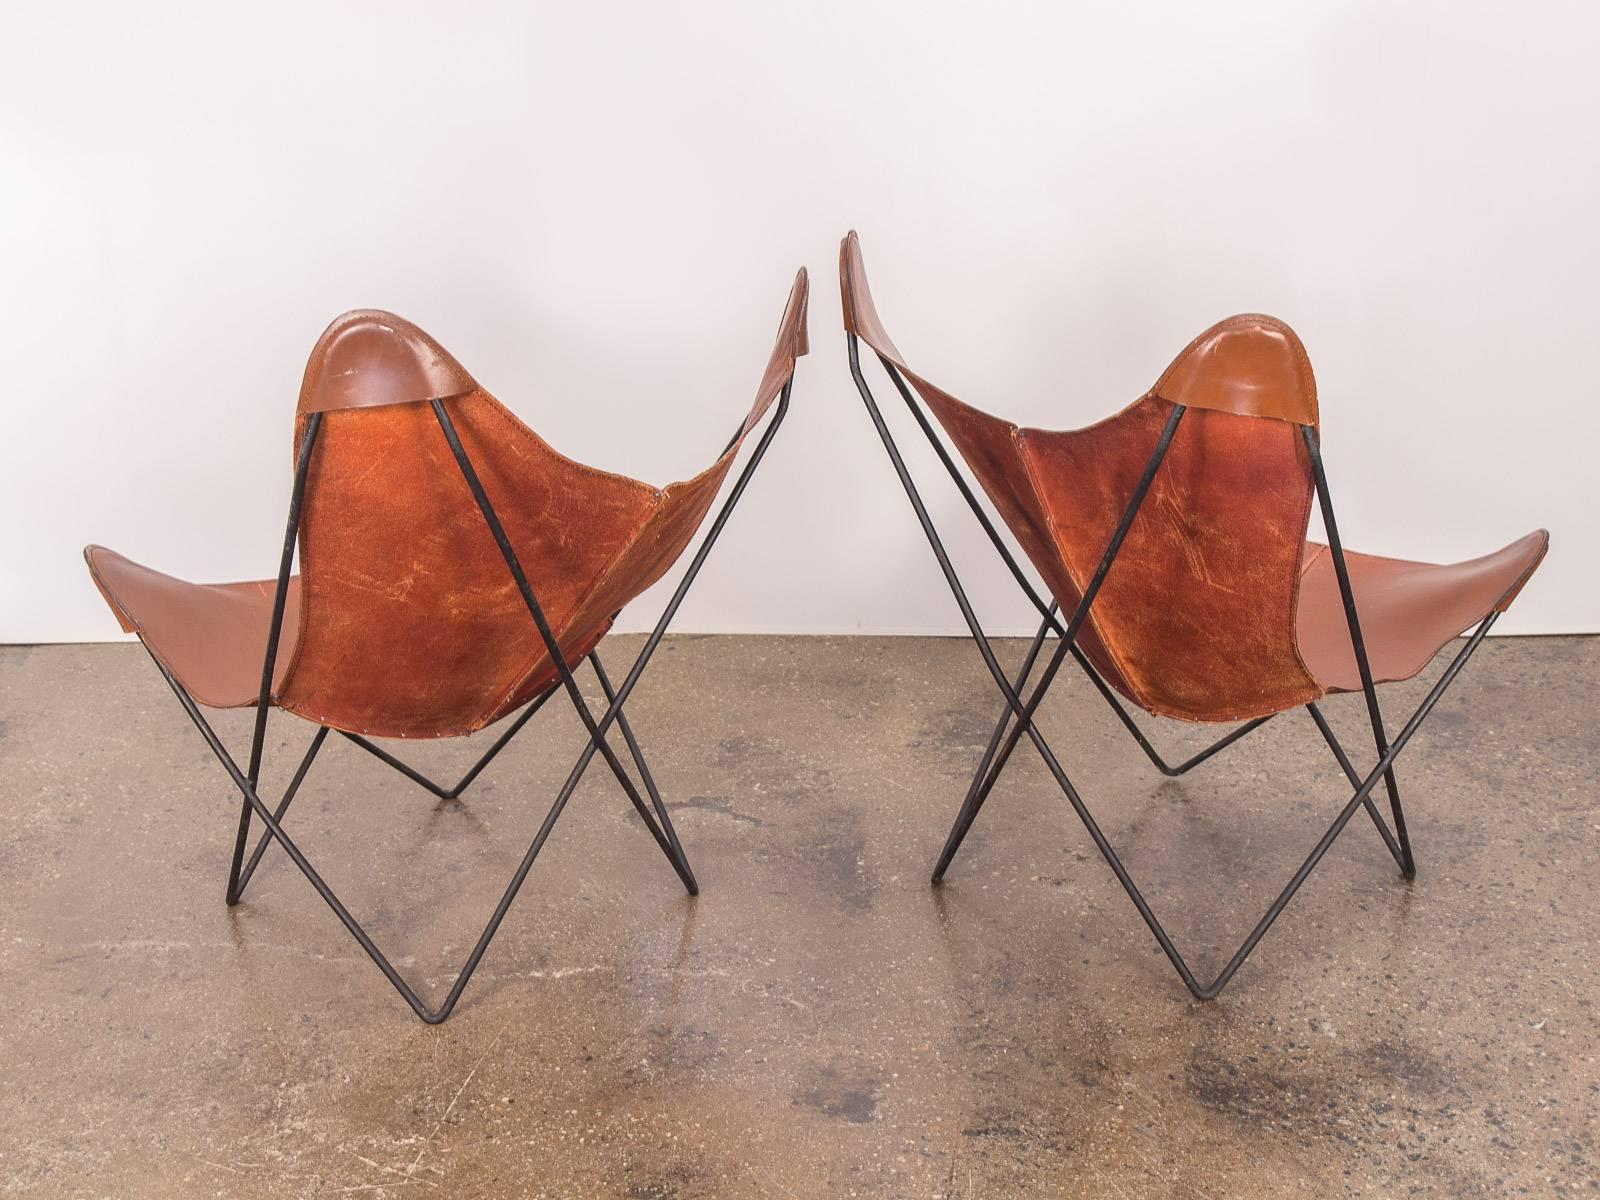 Butterfly Chair Knoll Pair Of Tabacco Brown Hardoy Butterfly Bkf Chairs For Knoll